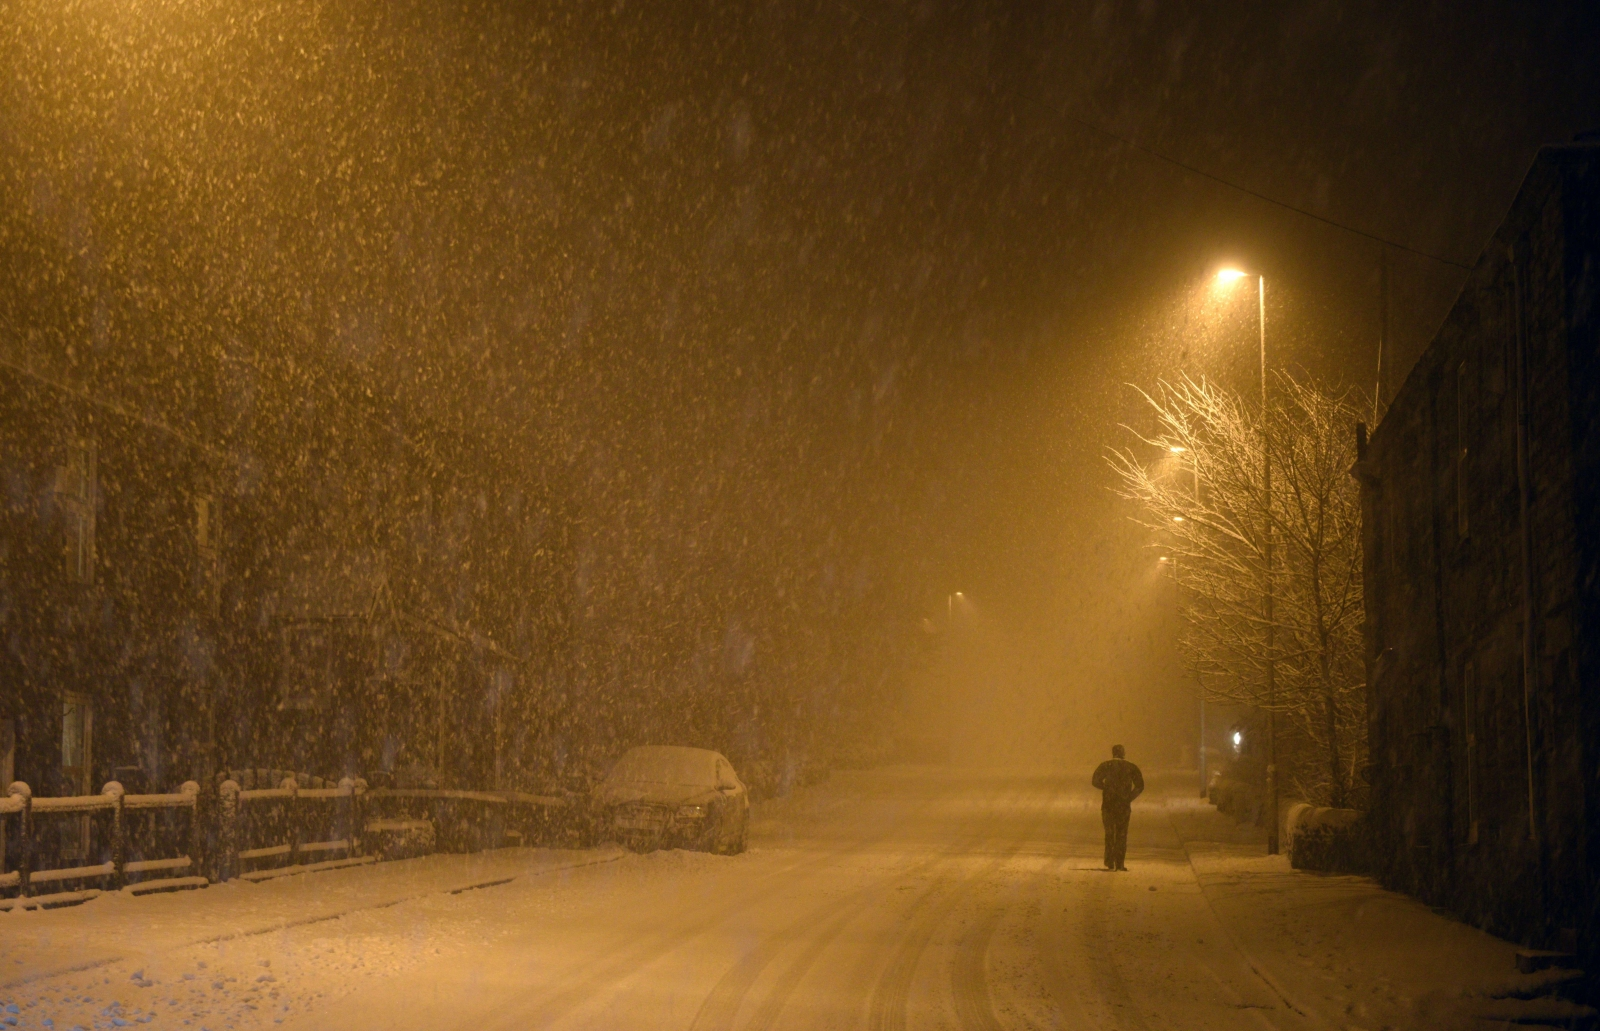 Wallpaper Fall Weather Uk Braces For Coldest Night In Years As Temperature Drops